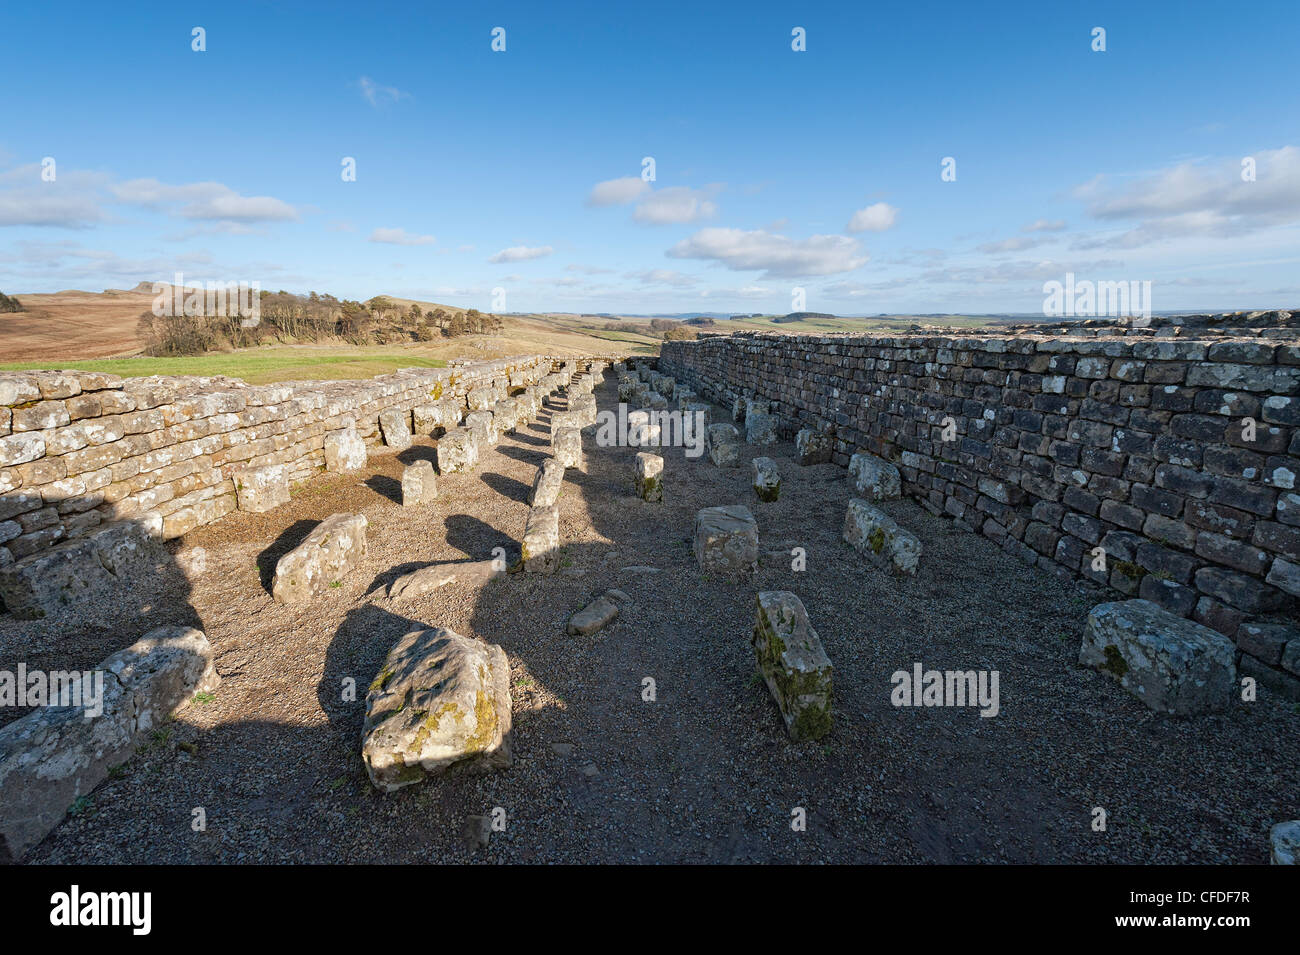 Foundations of a Roman Granary - Stock Image